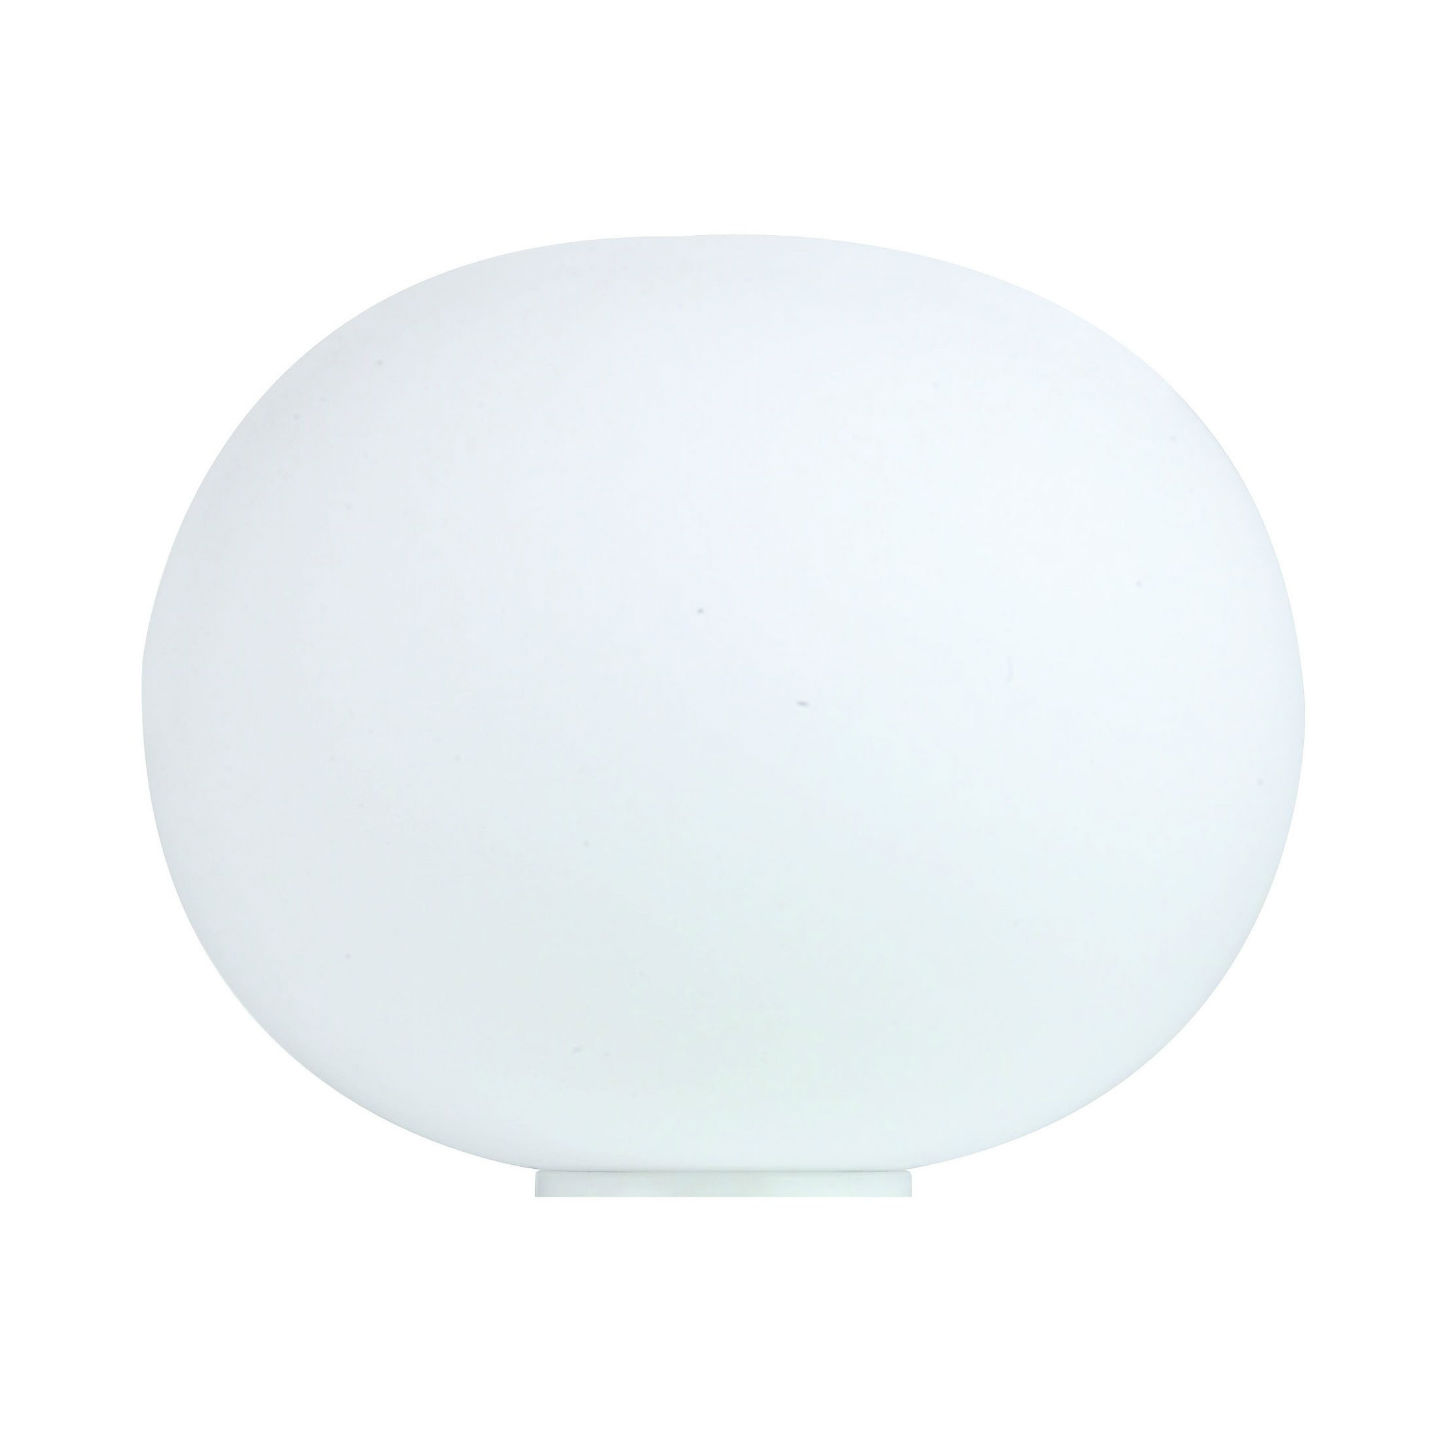 Glo Ball Basic Zero Sobremesa 19cm con regulador E14 - blanco opal